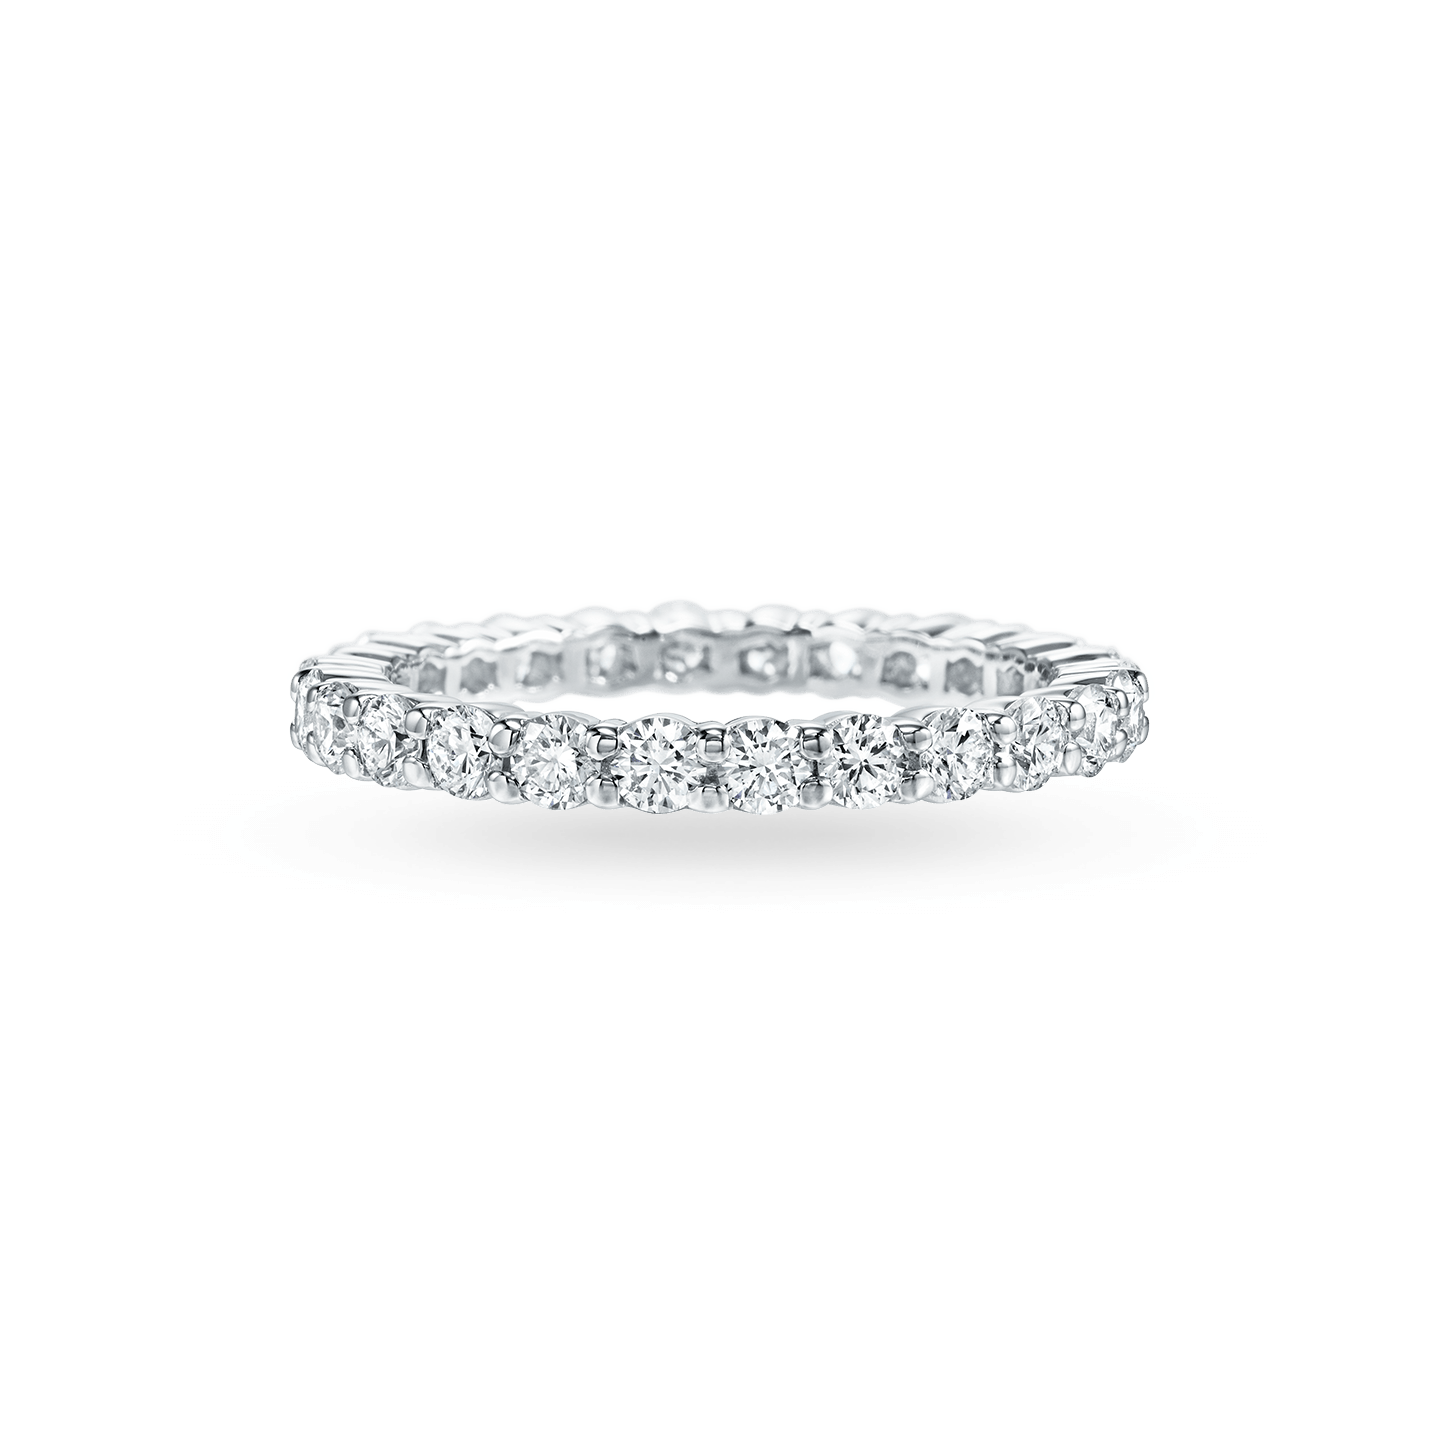 Prong-Set Round Brilliant Diamond Wedding Band, Product Image 1